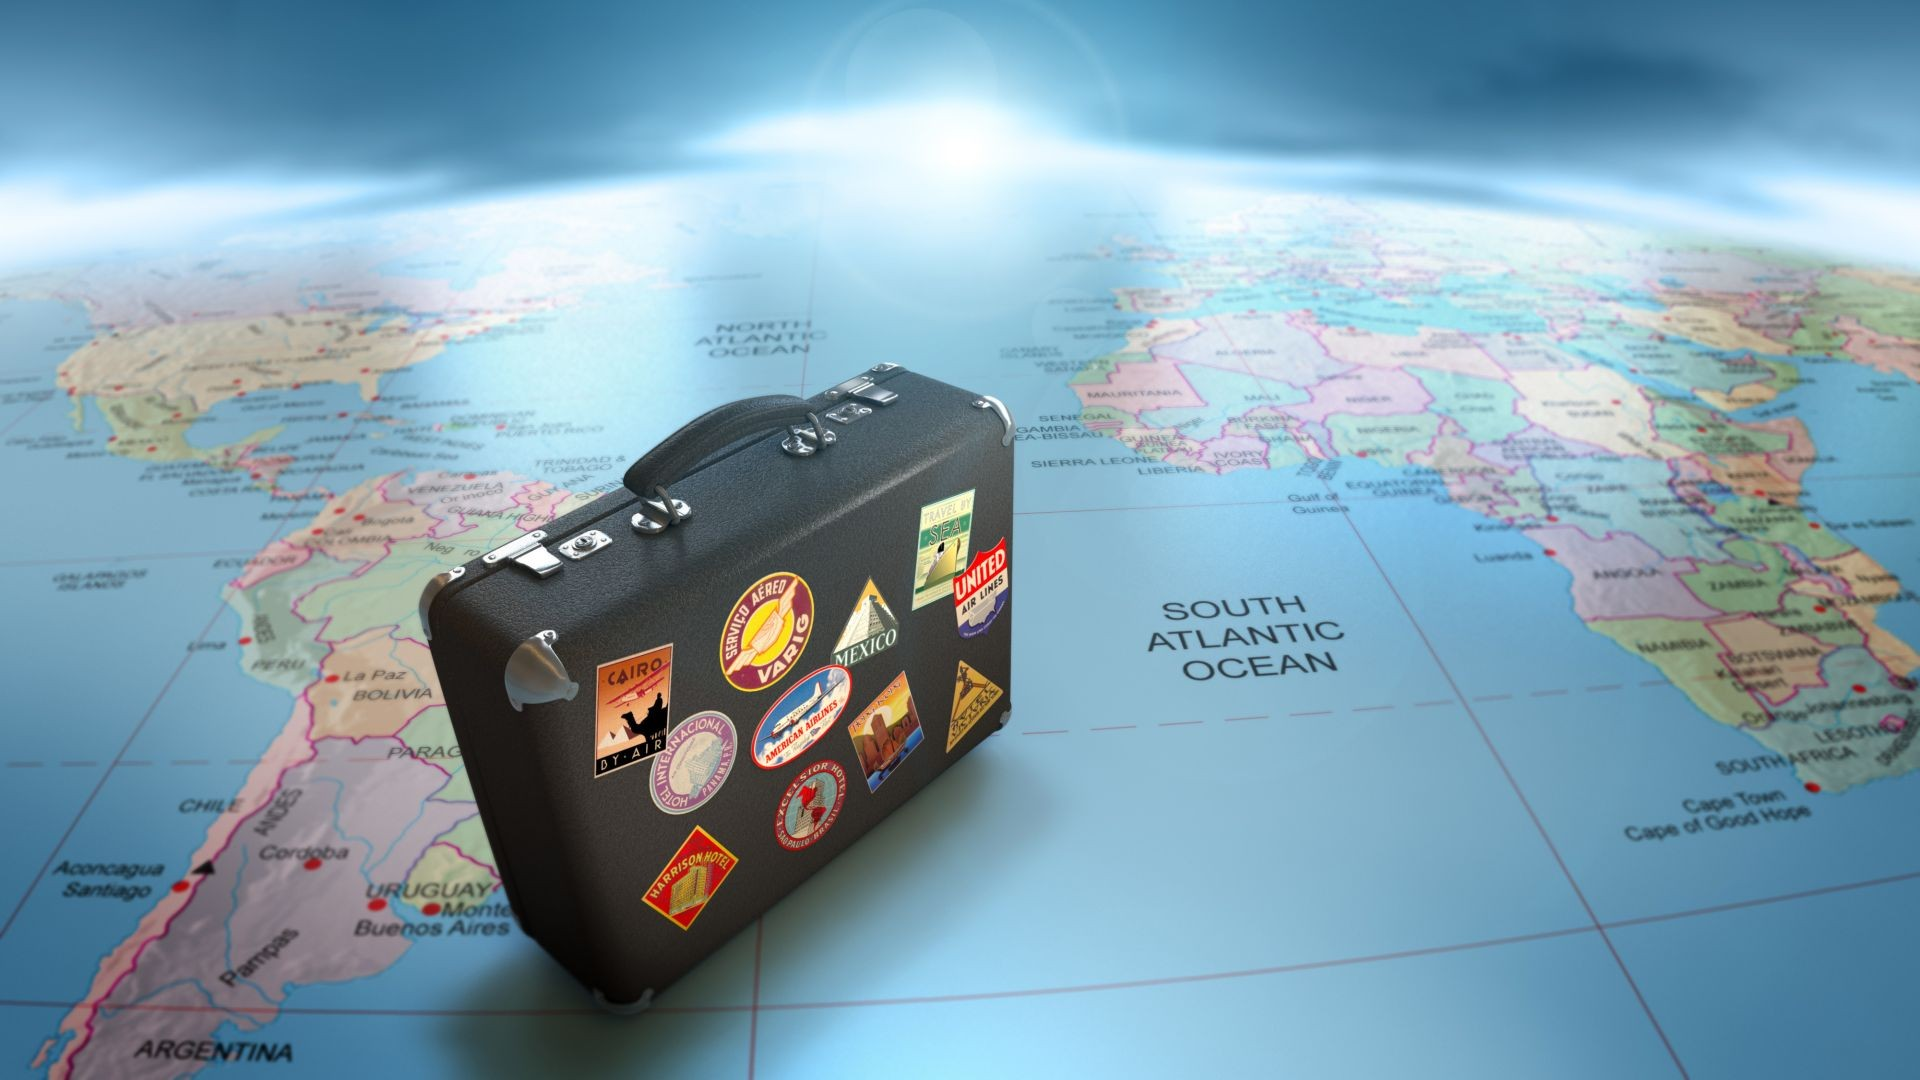 Travel providers: is your online presence competitive?